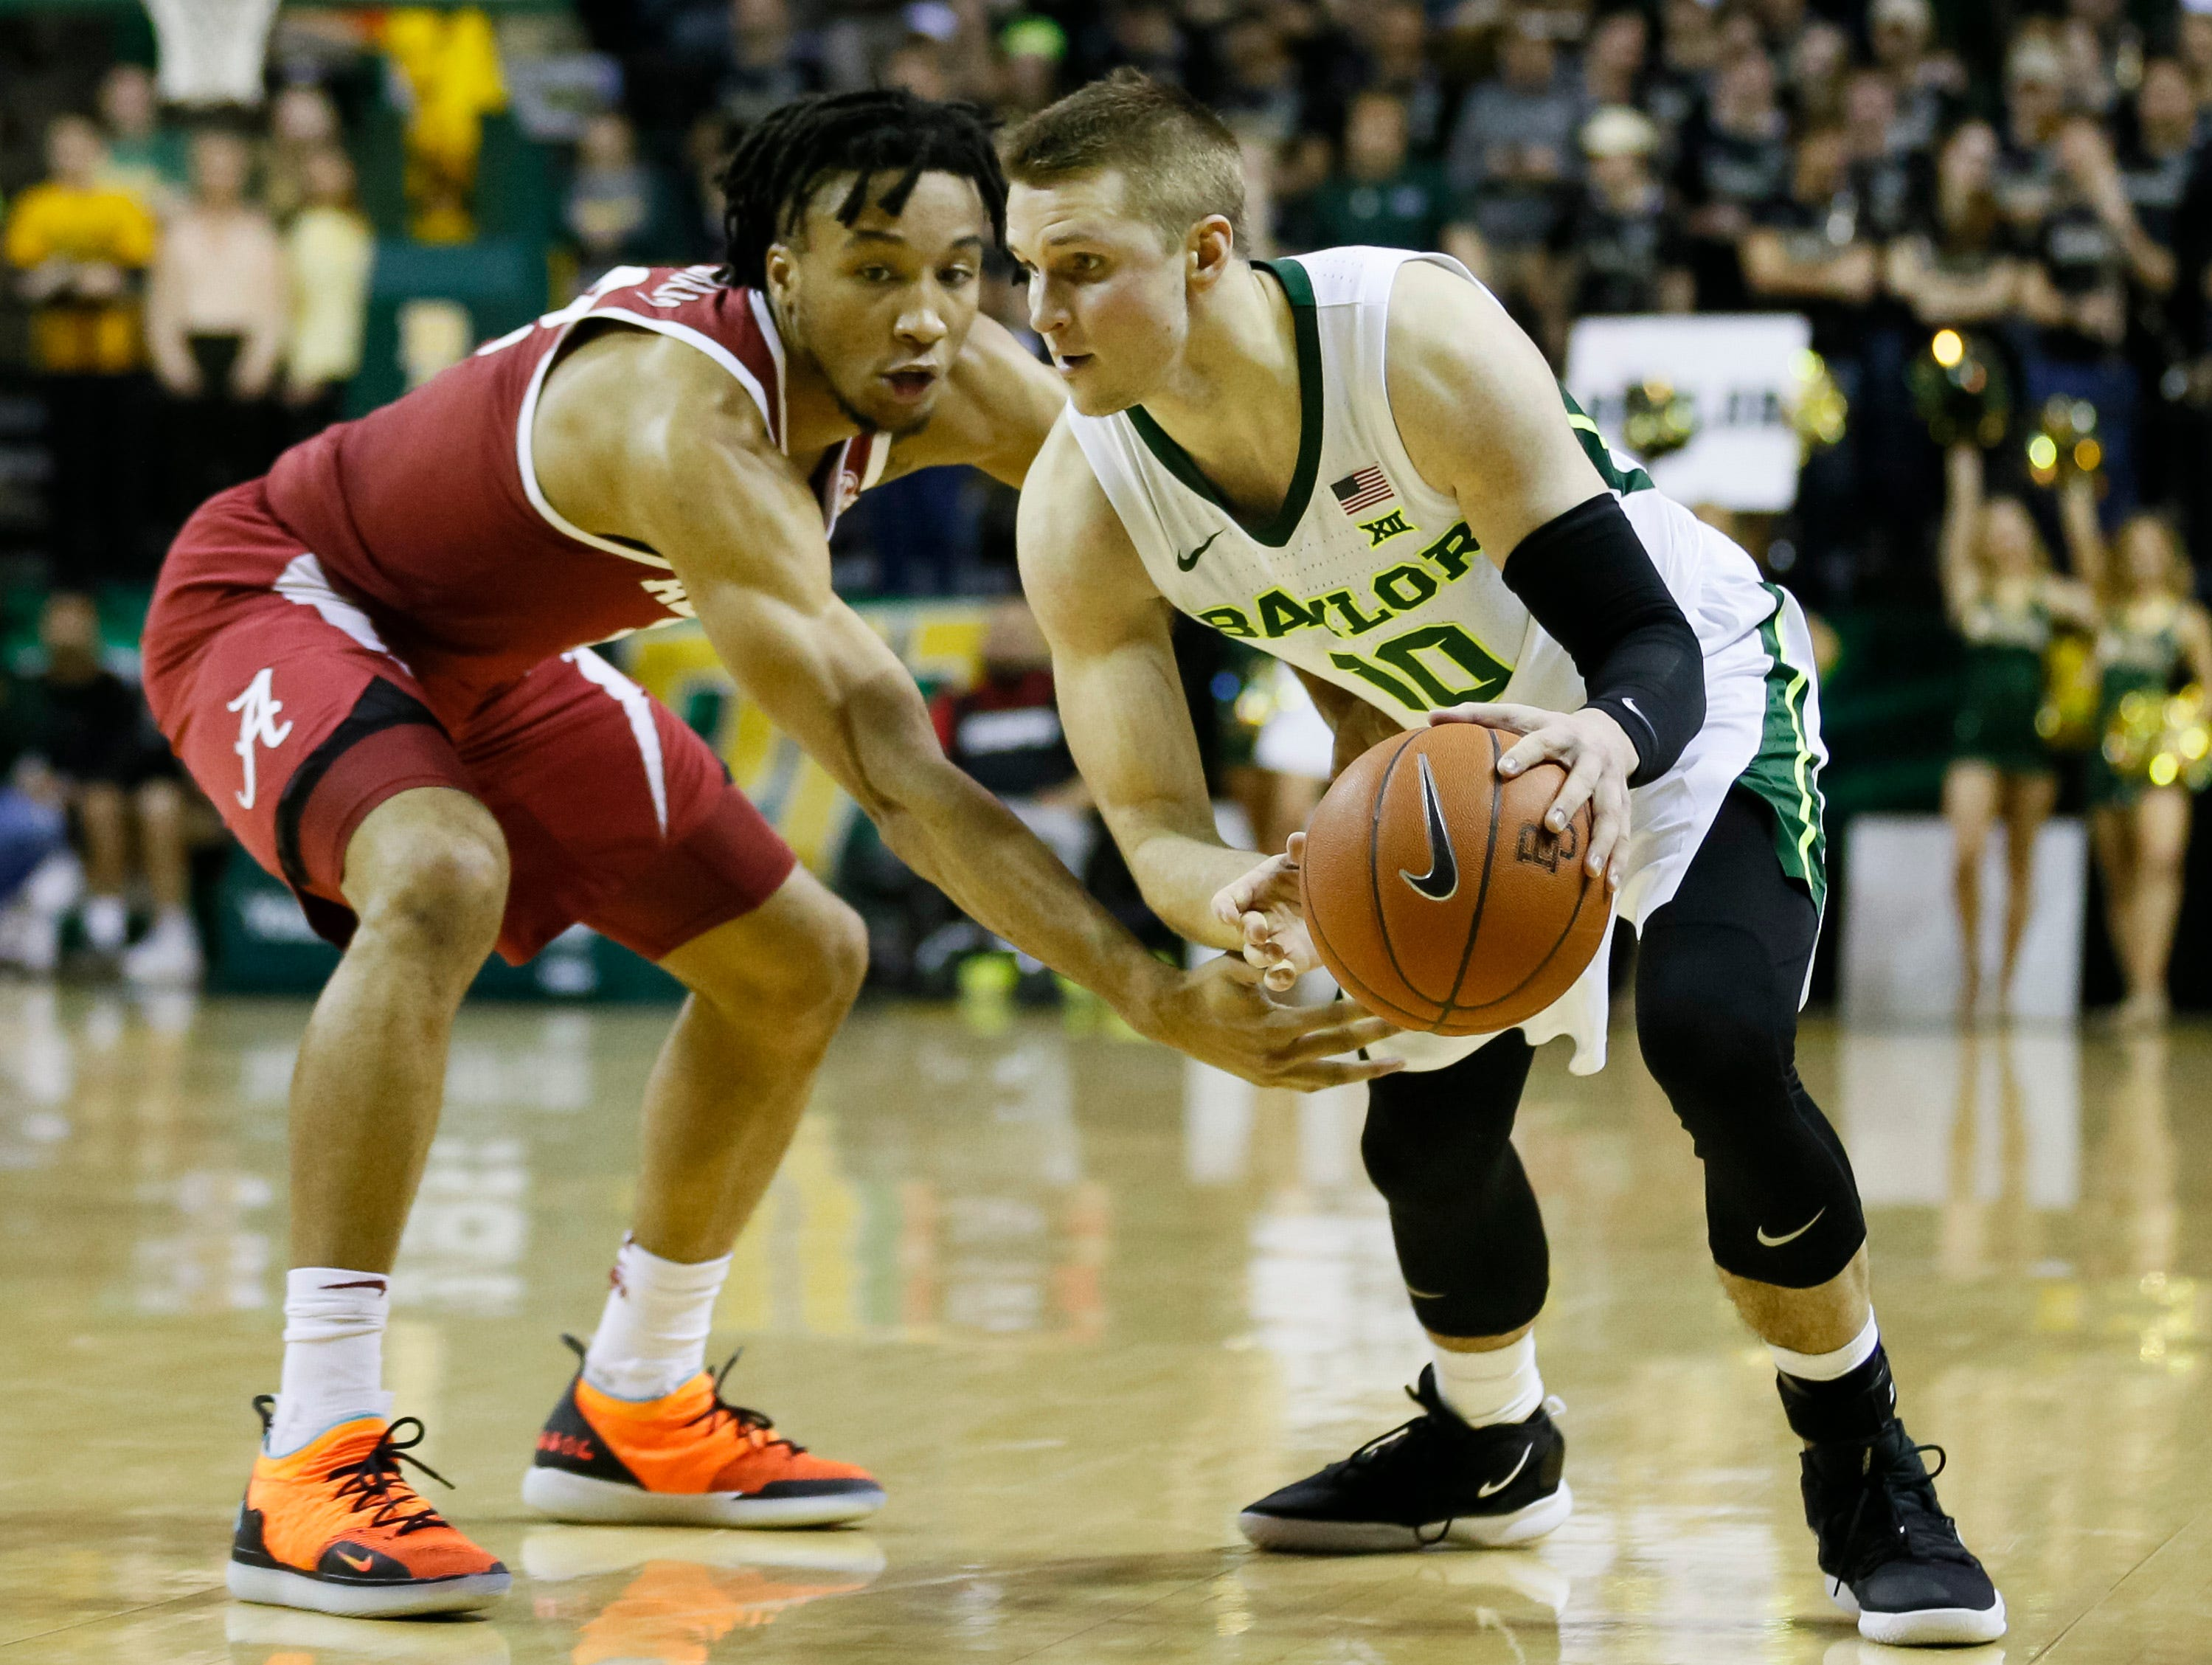 Jan 26, 2019; Waco, TX, USA; Baylor Bears guard Makai Mason (10) works around Alabama Crimson Tide guard Dazon Ingram (12) during the second half at Ferrell Center. Mandatory Credit: Ray Carlin-USA TODAY Sports